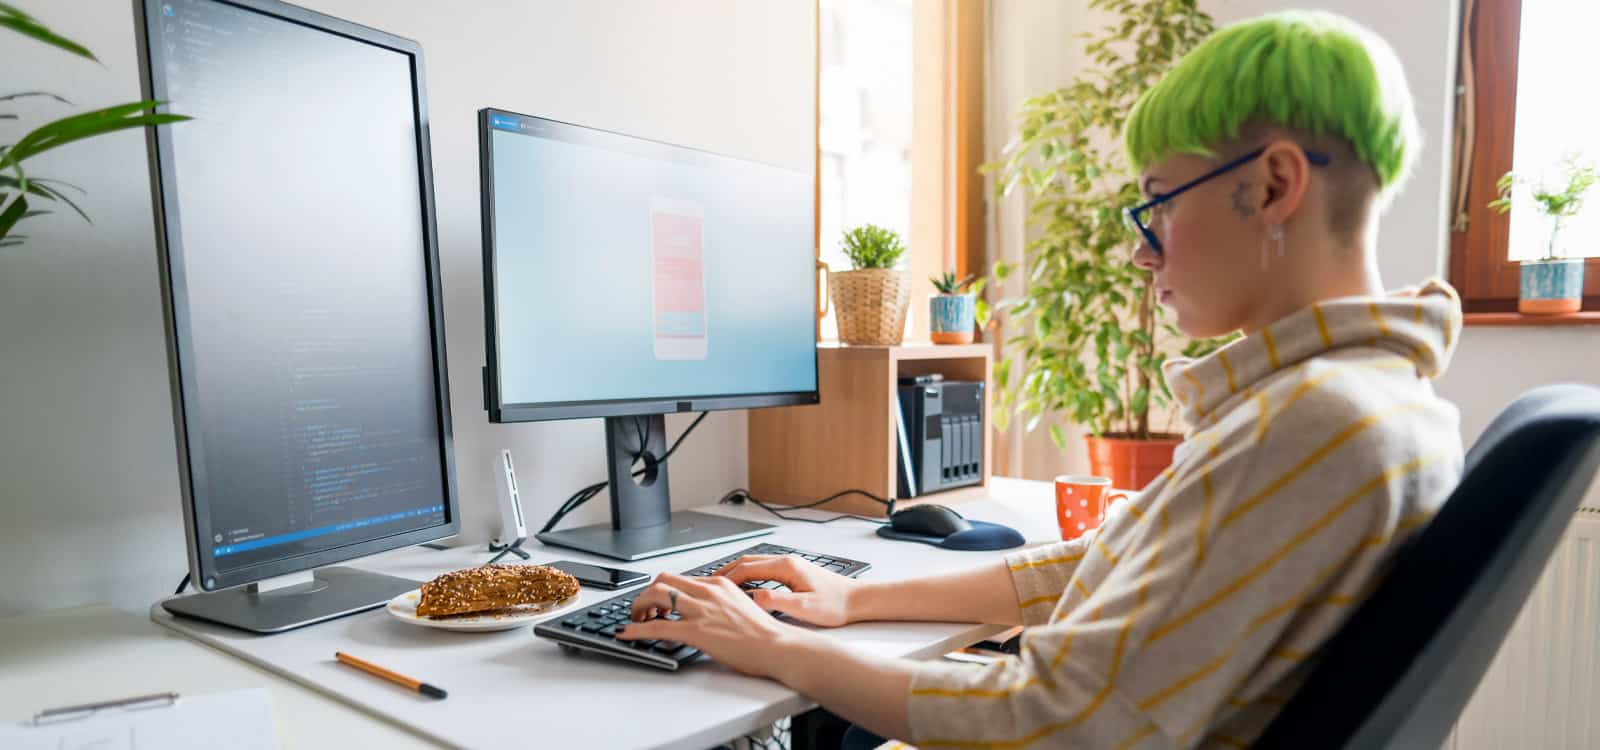 A person with green hair sits in front of dual monitors and appears to be coding, indicating she pursued the business idea of becoming an app developer